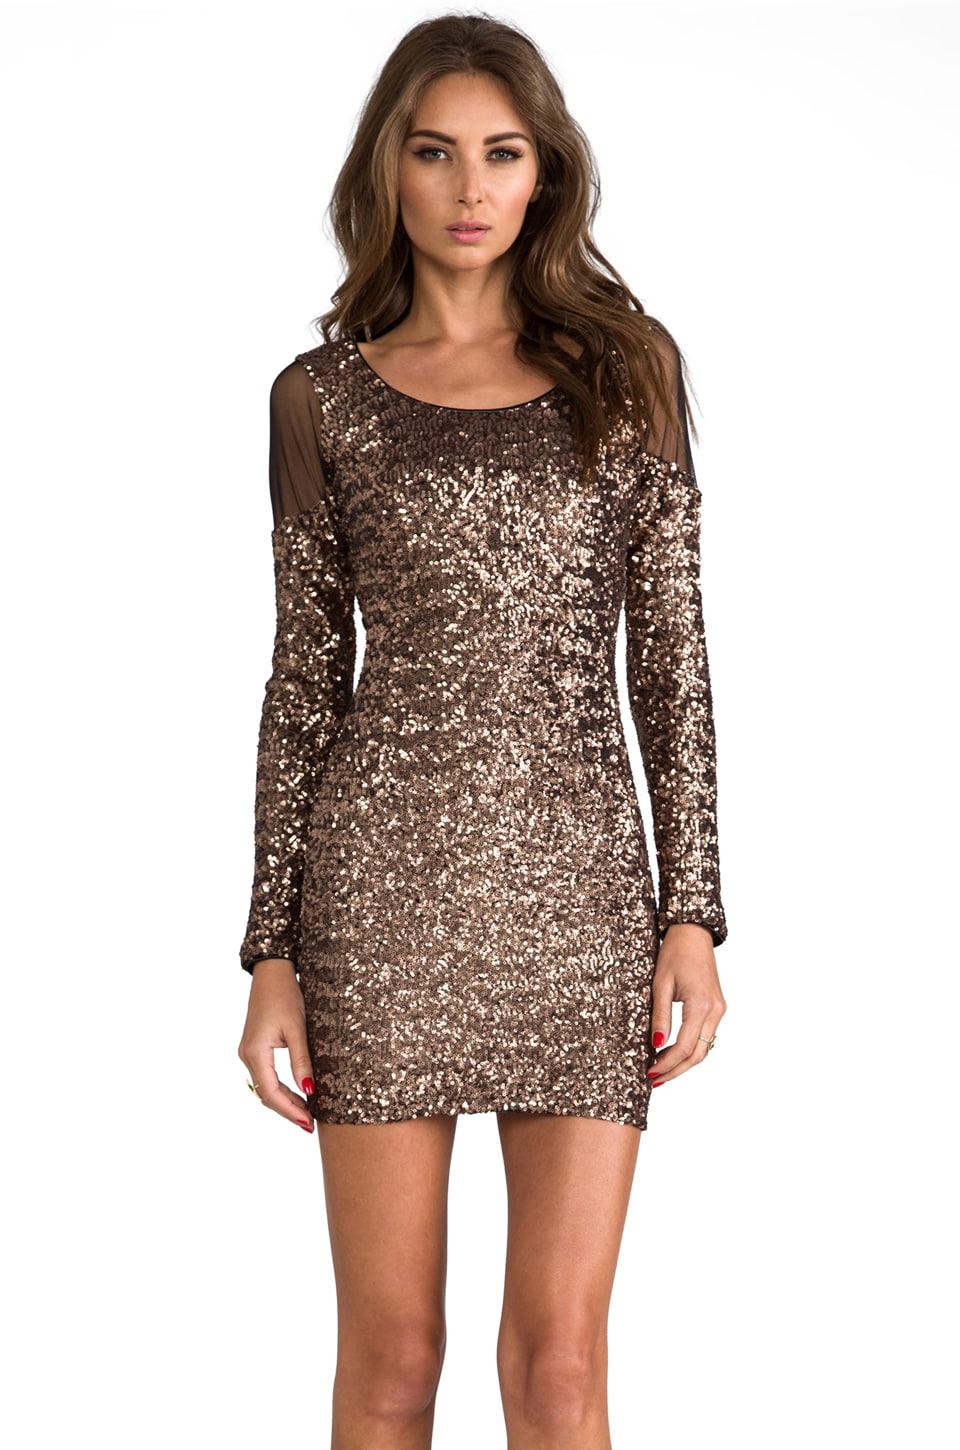 DRESS THE POPULATION Jaden Cut Out Dress in Copper